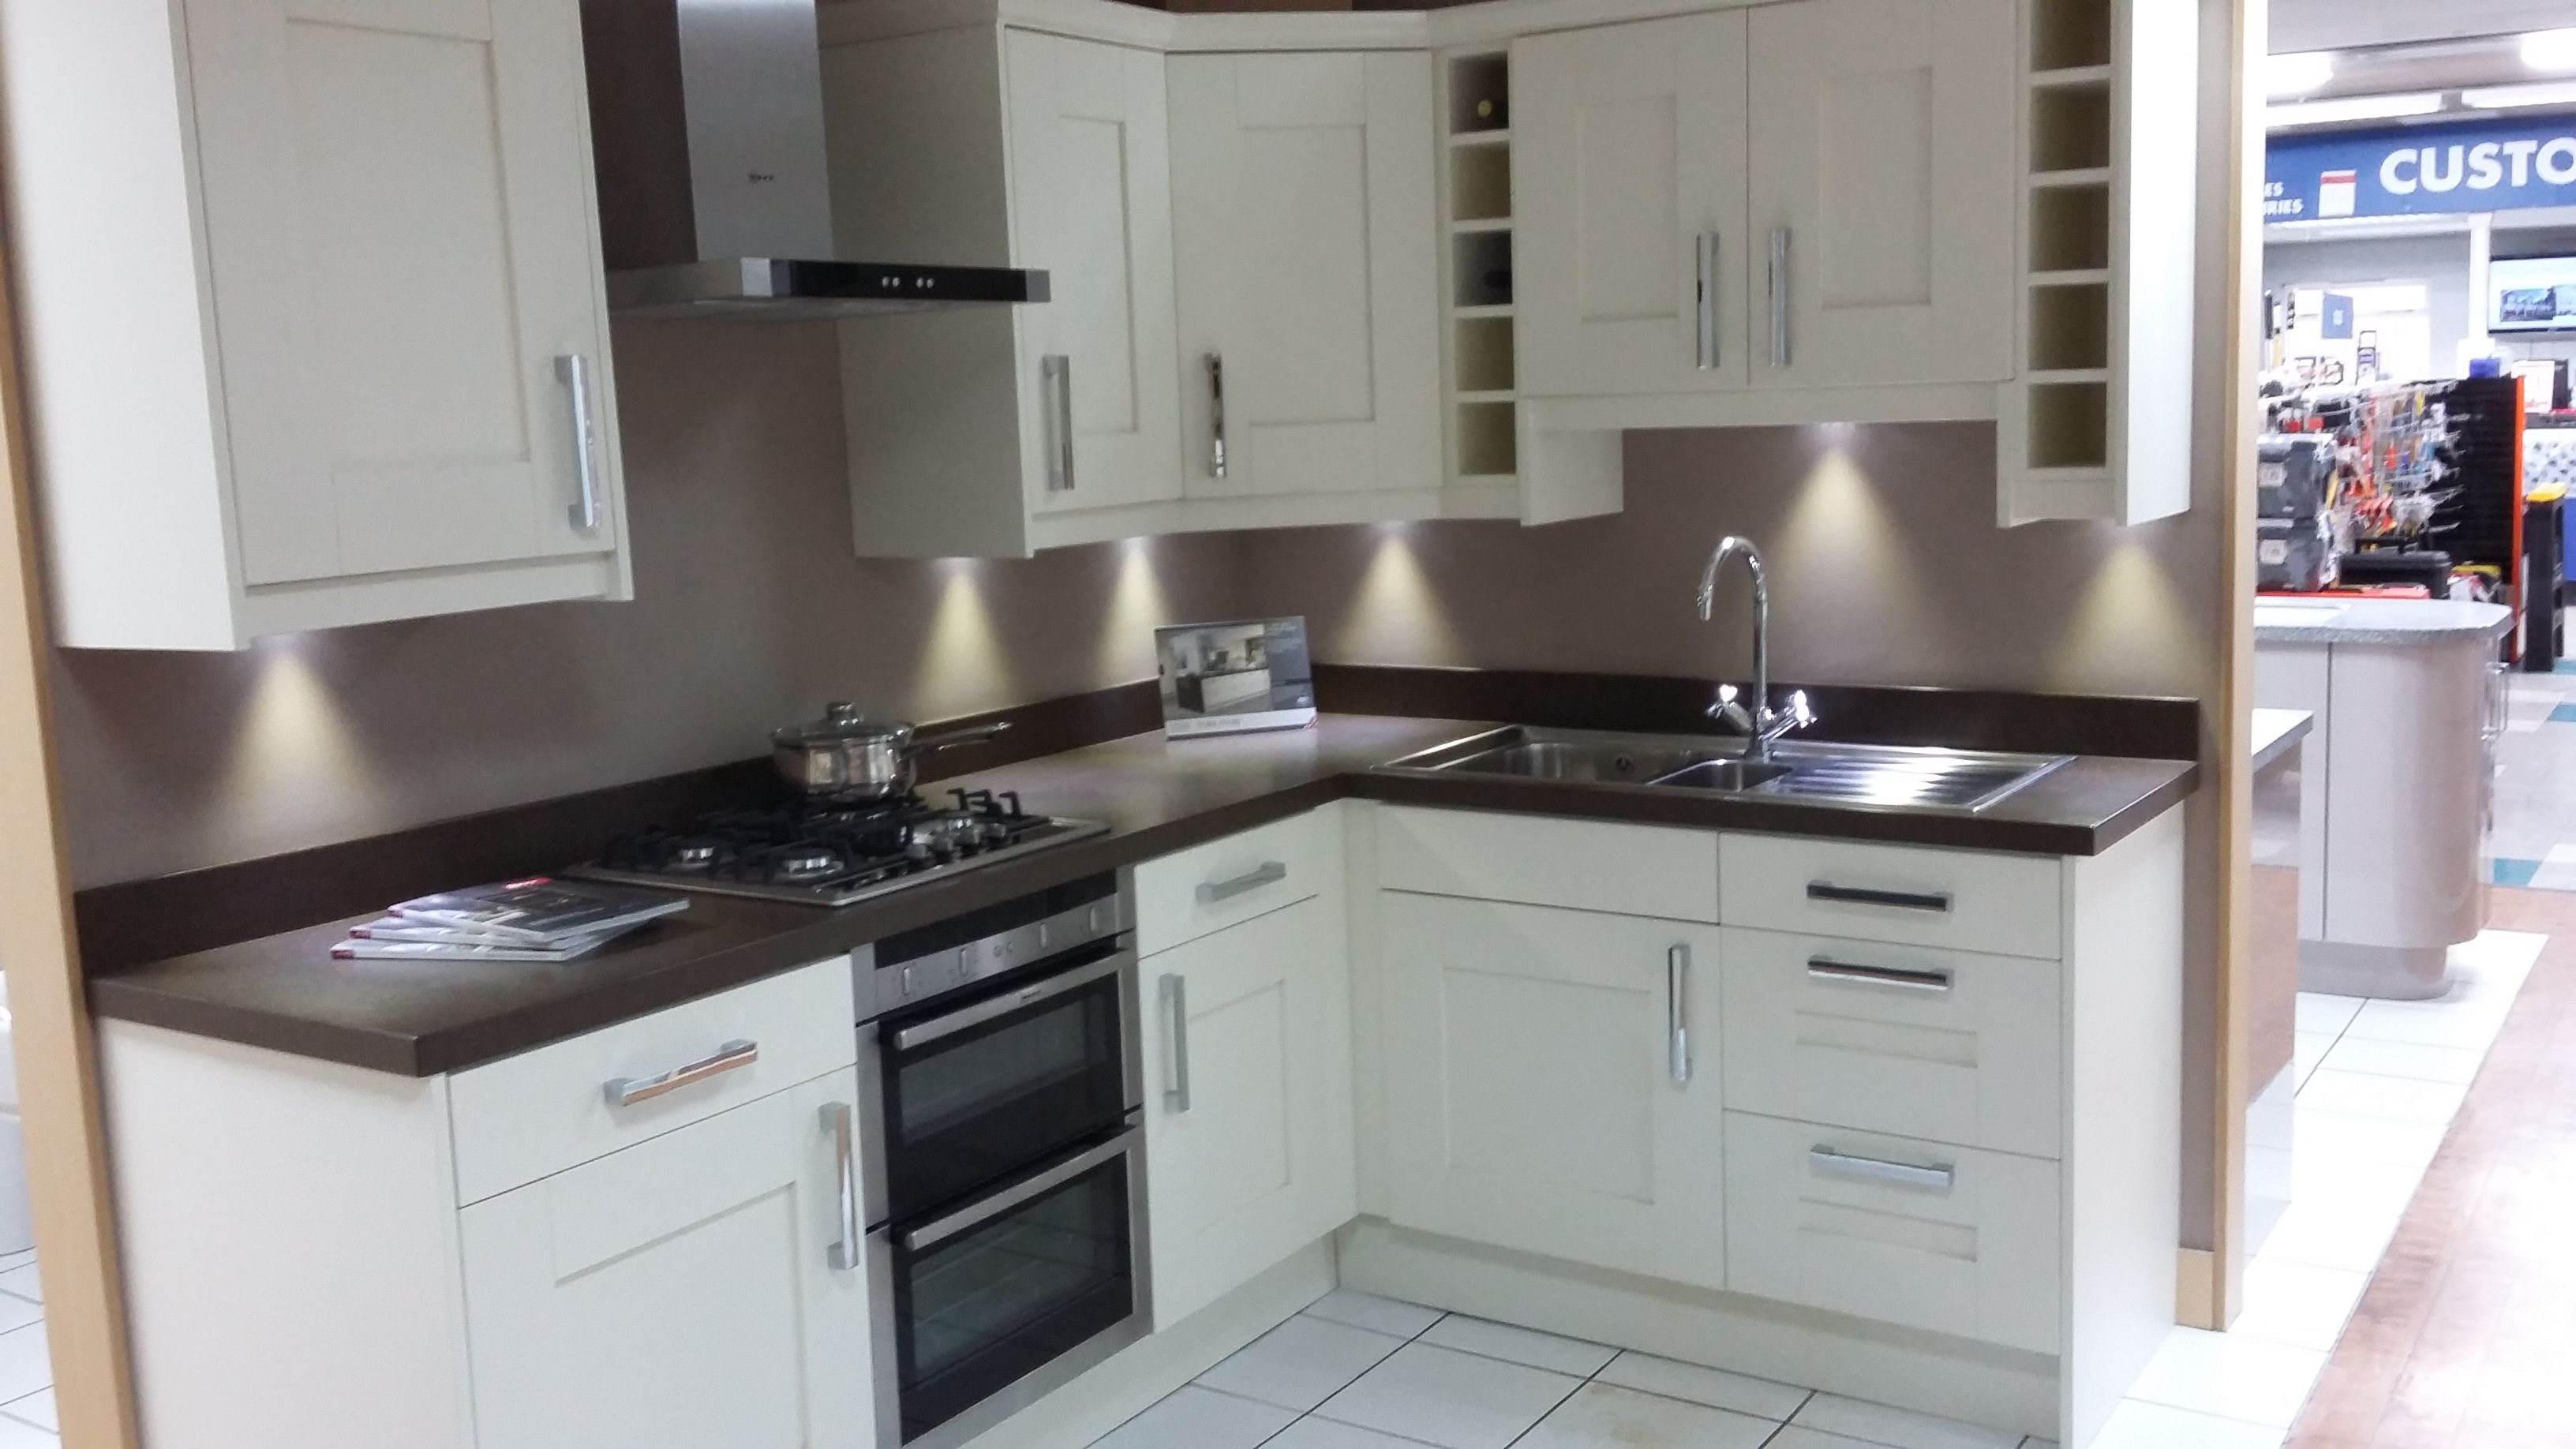 Kitchen Showroom Studio York Ivory Kitchen With Chrome D Handles At Our Newton